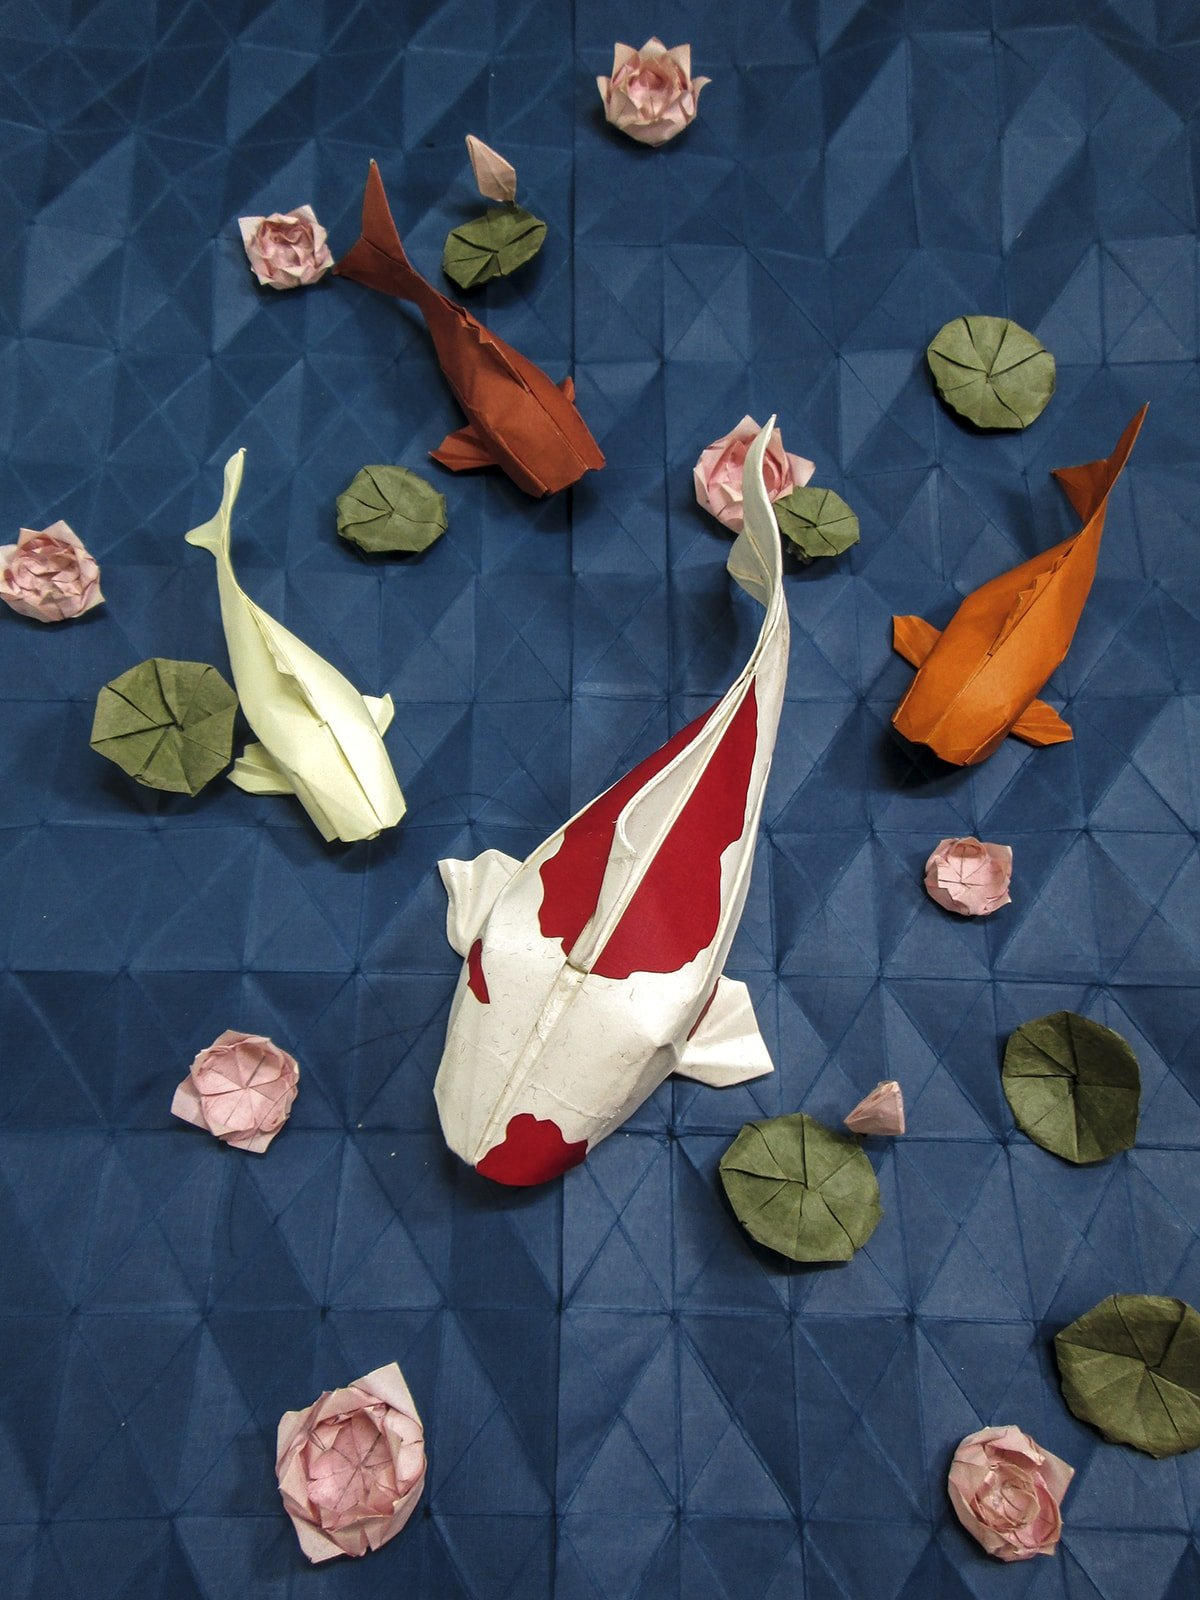 Koi Pond Scene Folded by Le Danh